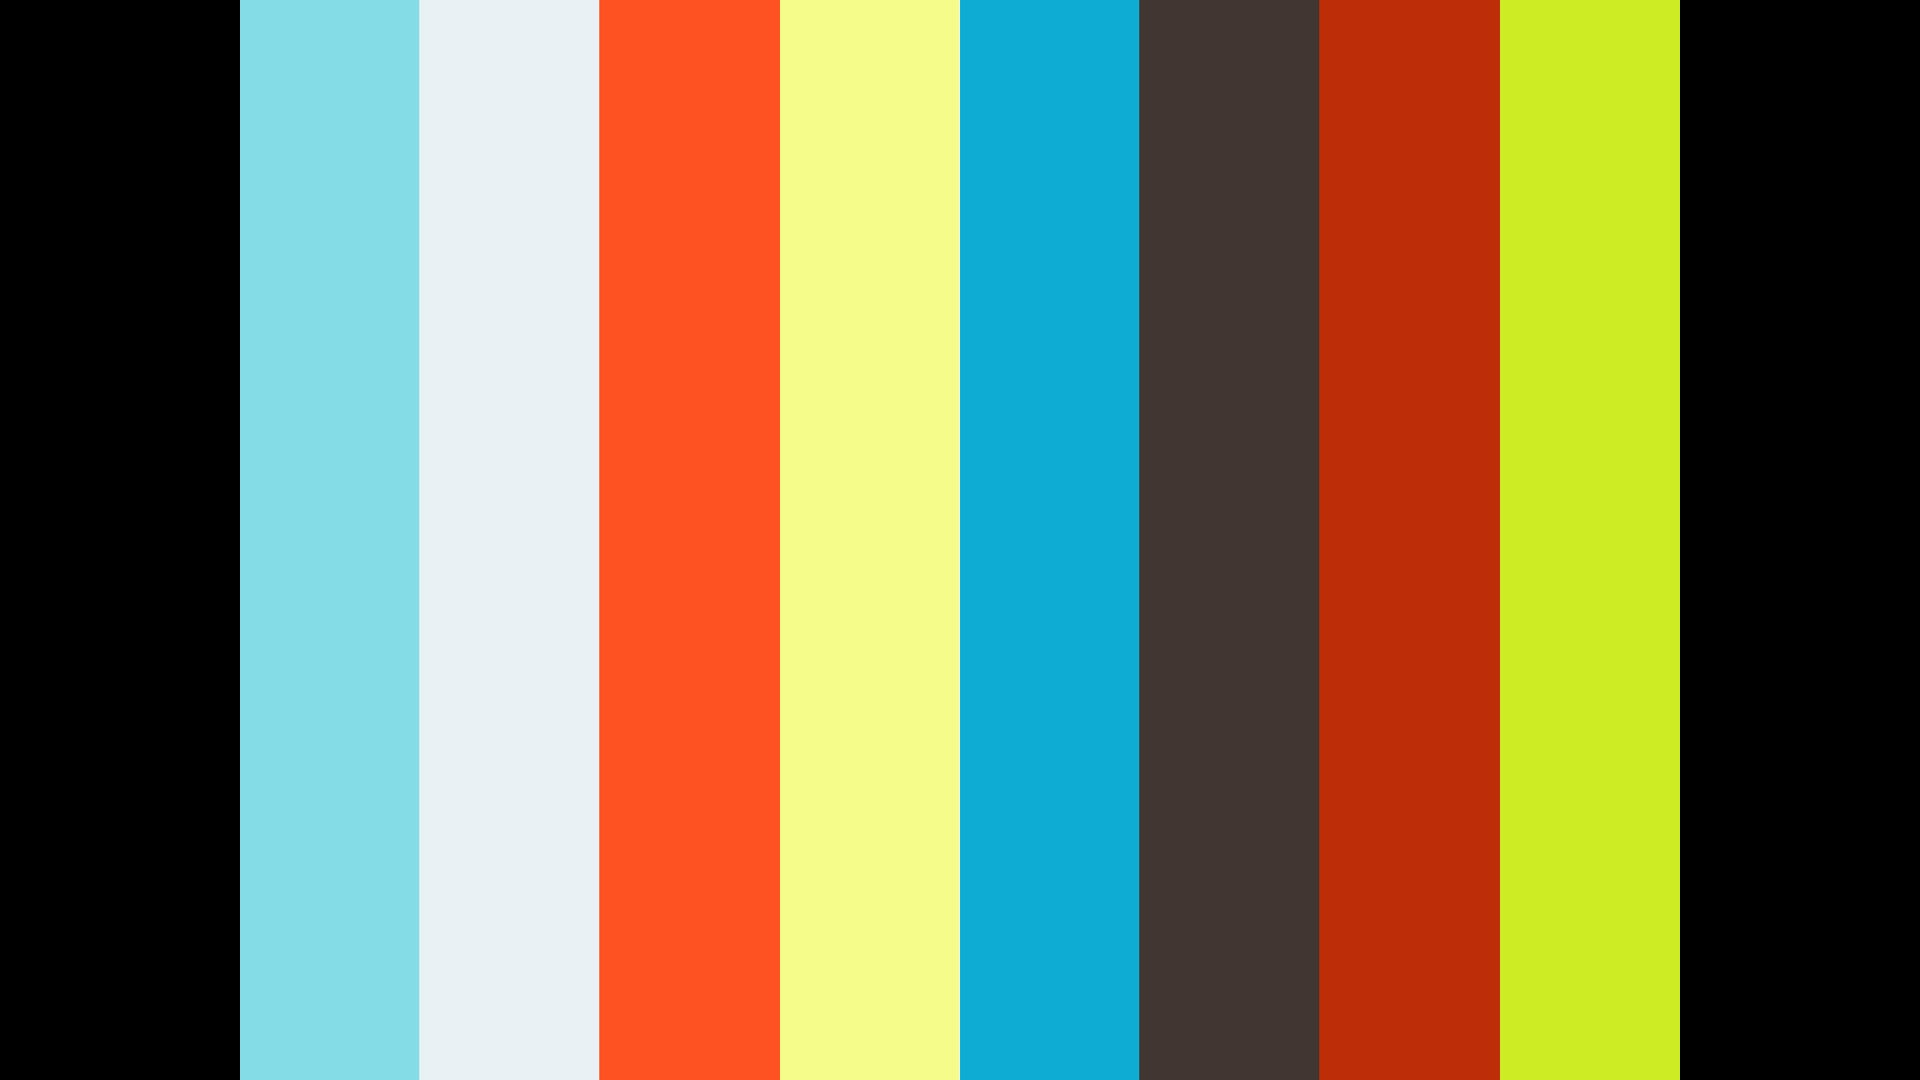 Introduction of Anupama Rao by Saskia Köbschall [2]